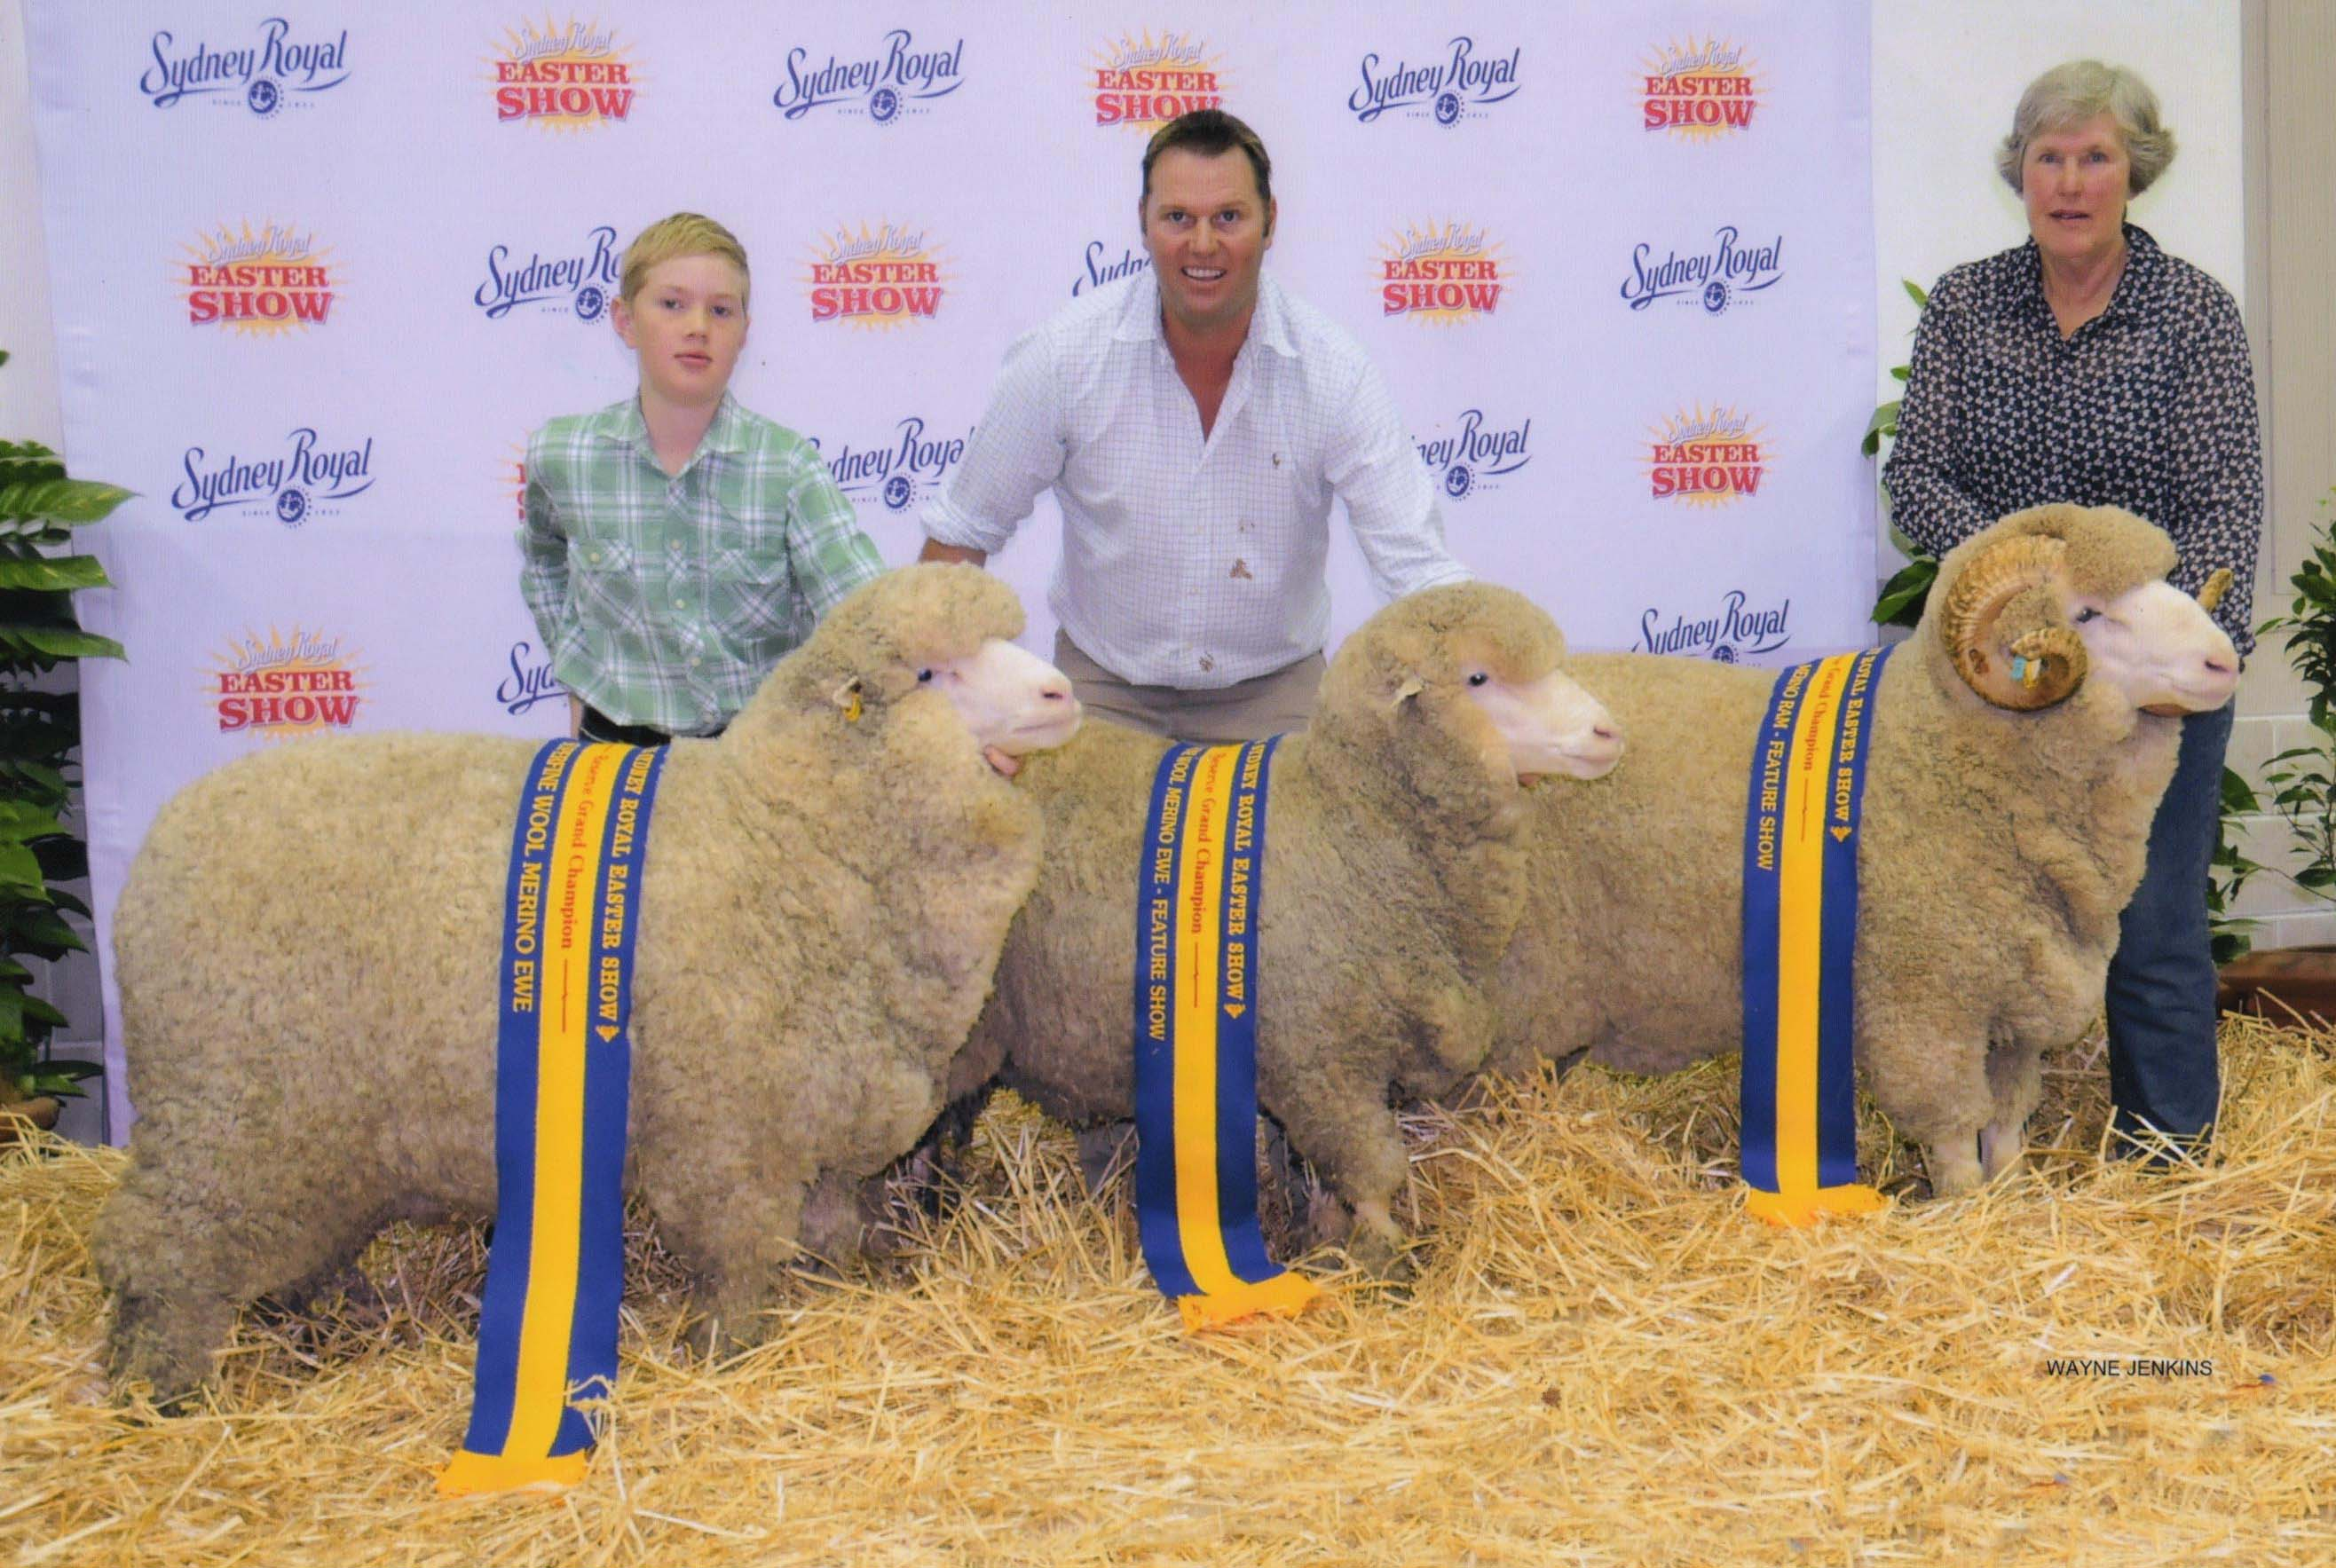 Three generations holding sheep at the Sydney Royal Easter Show in 2015 - Hain, Joe and Alison van Eyk.